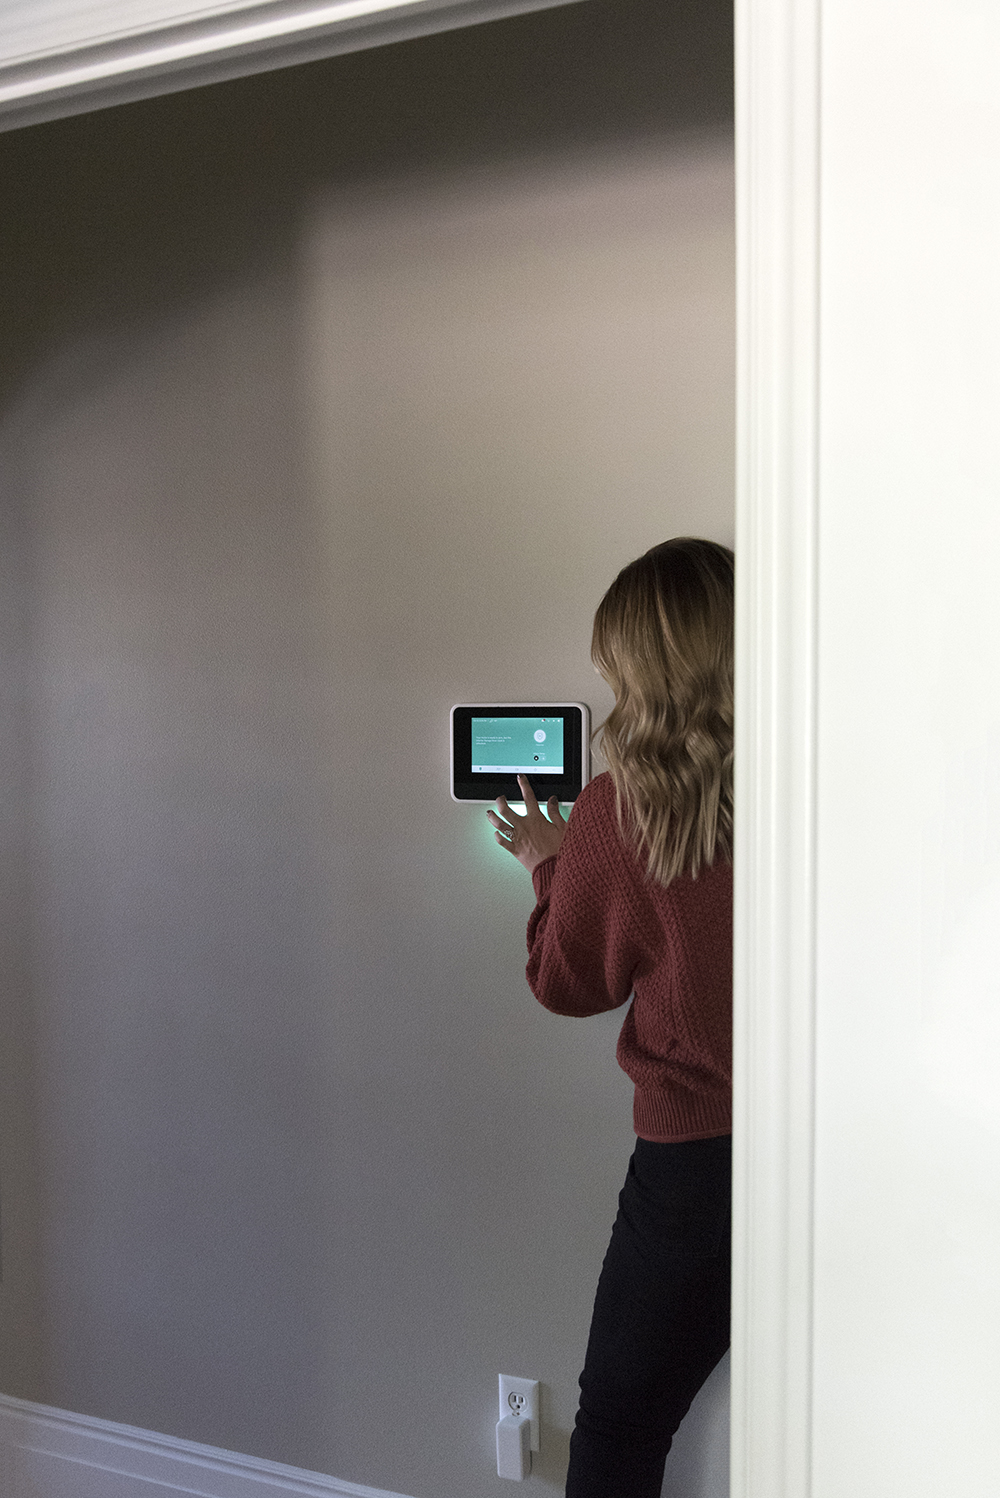 Our Security System - roomfortuesday.com